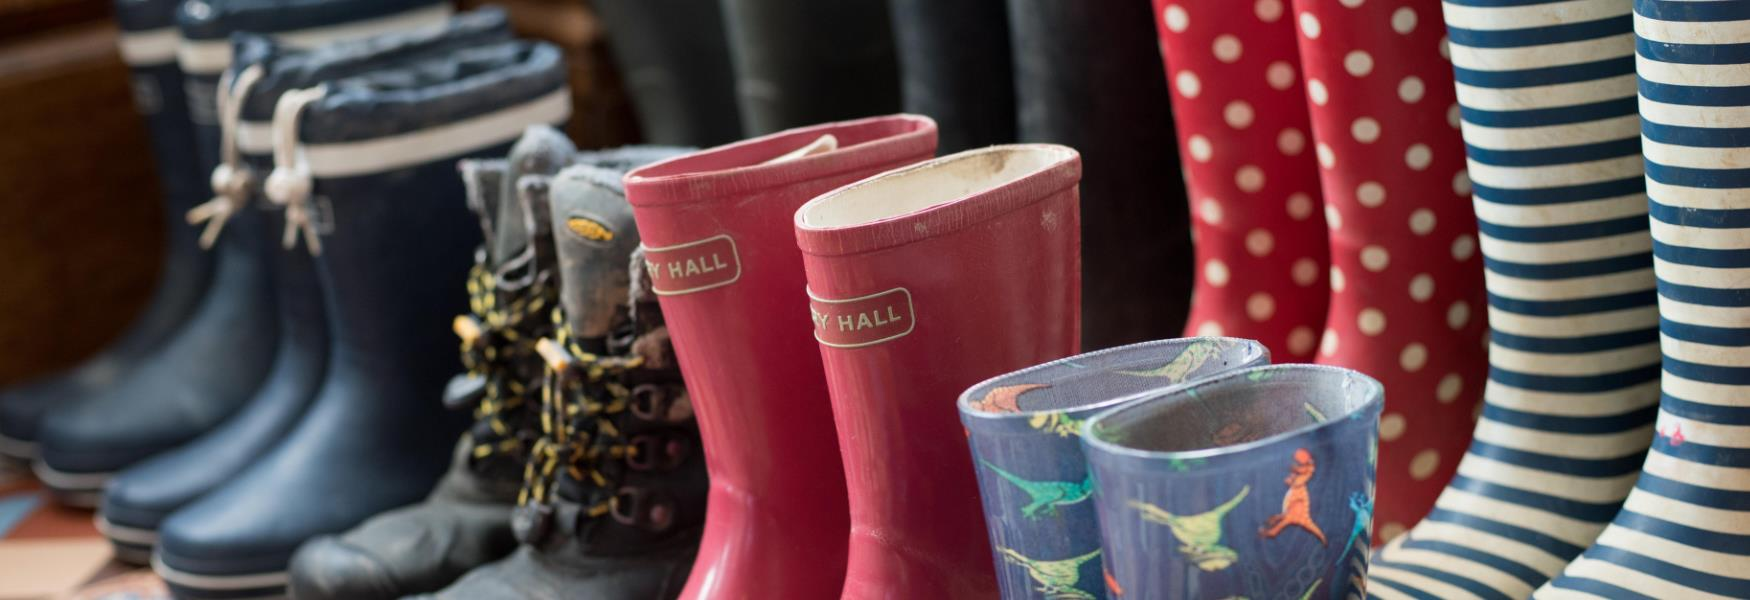 welly boots for rainy days in the new forest